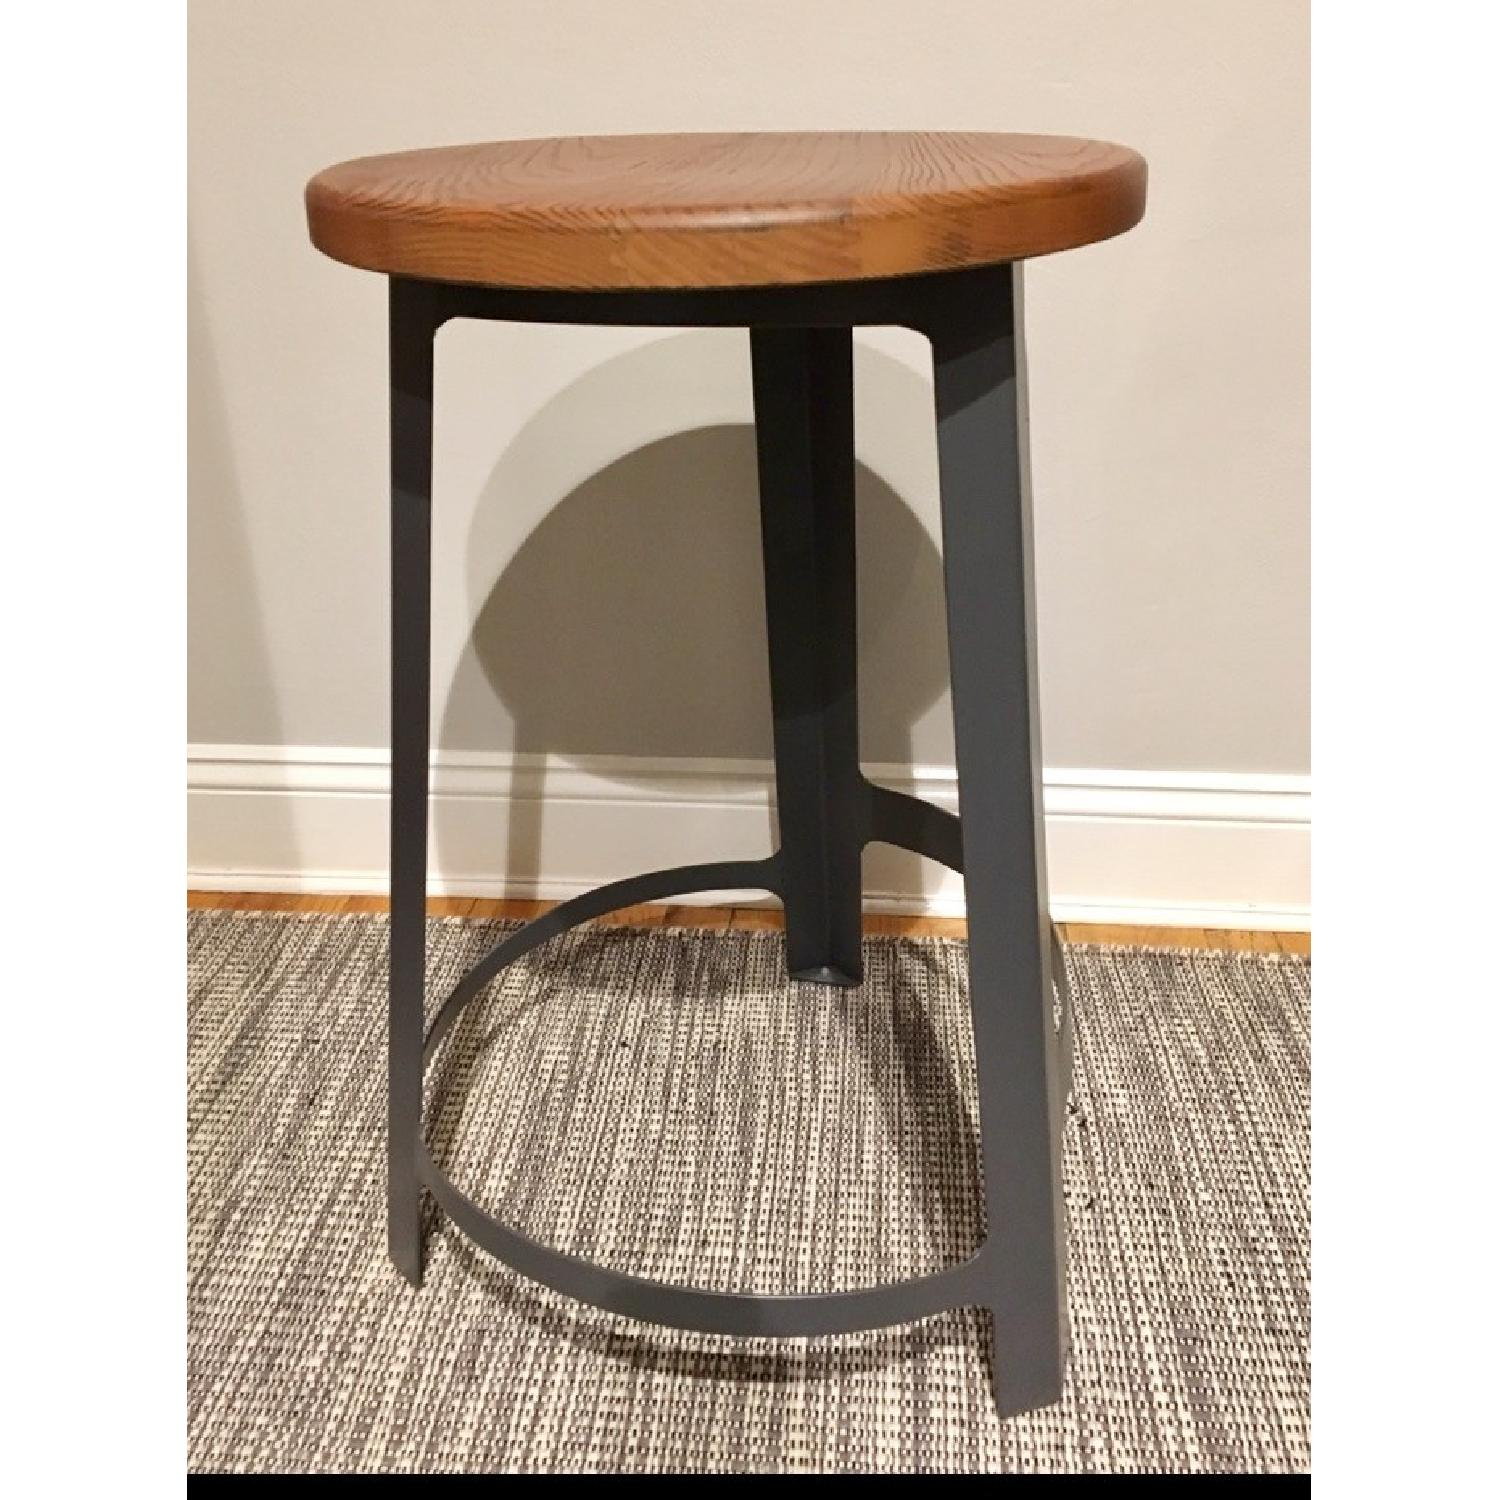 Mid Century Metal Frame Counter Stools w/ Solid Wood Seats - image-2